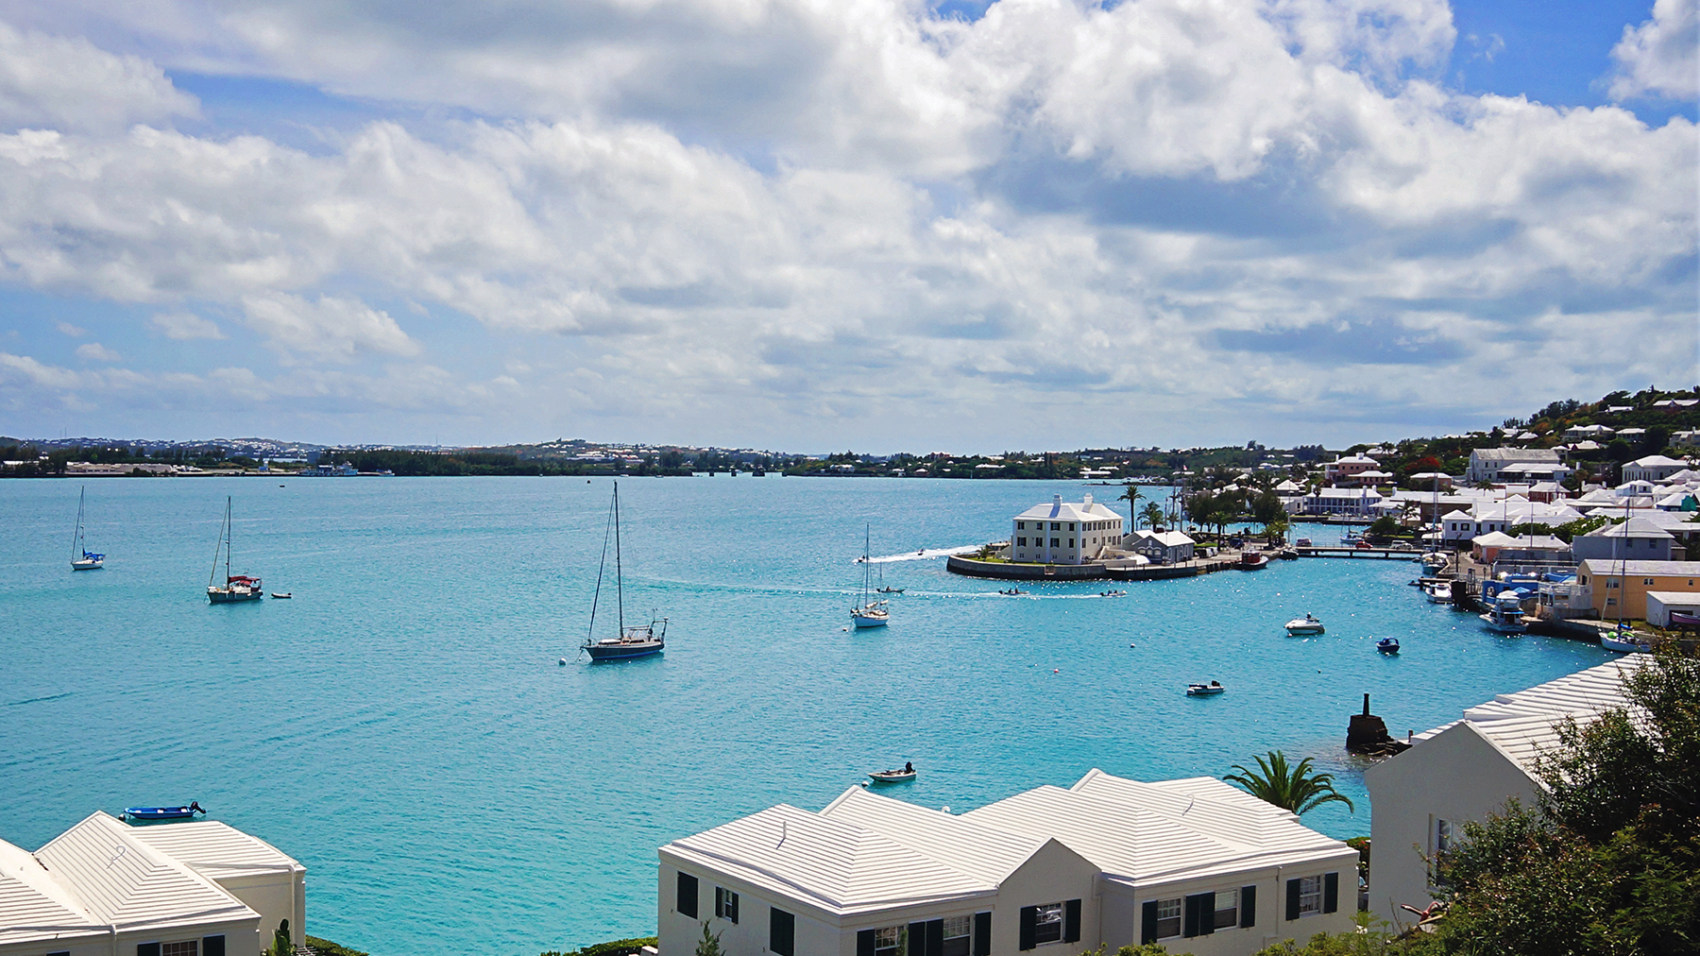 Serendipity in St. George's Harbor, Bermuda